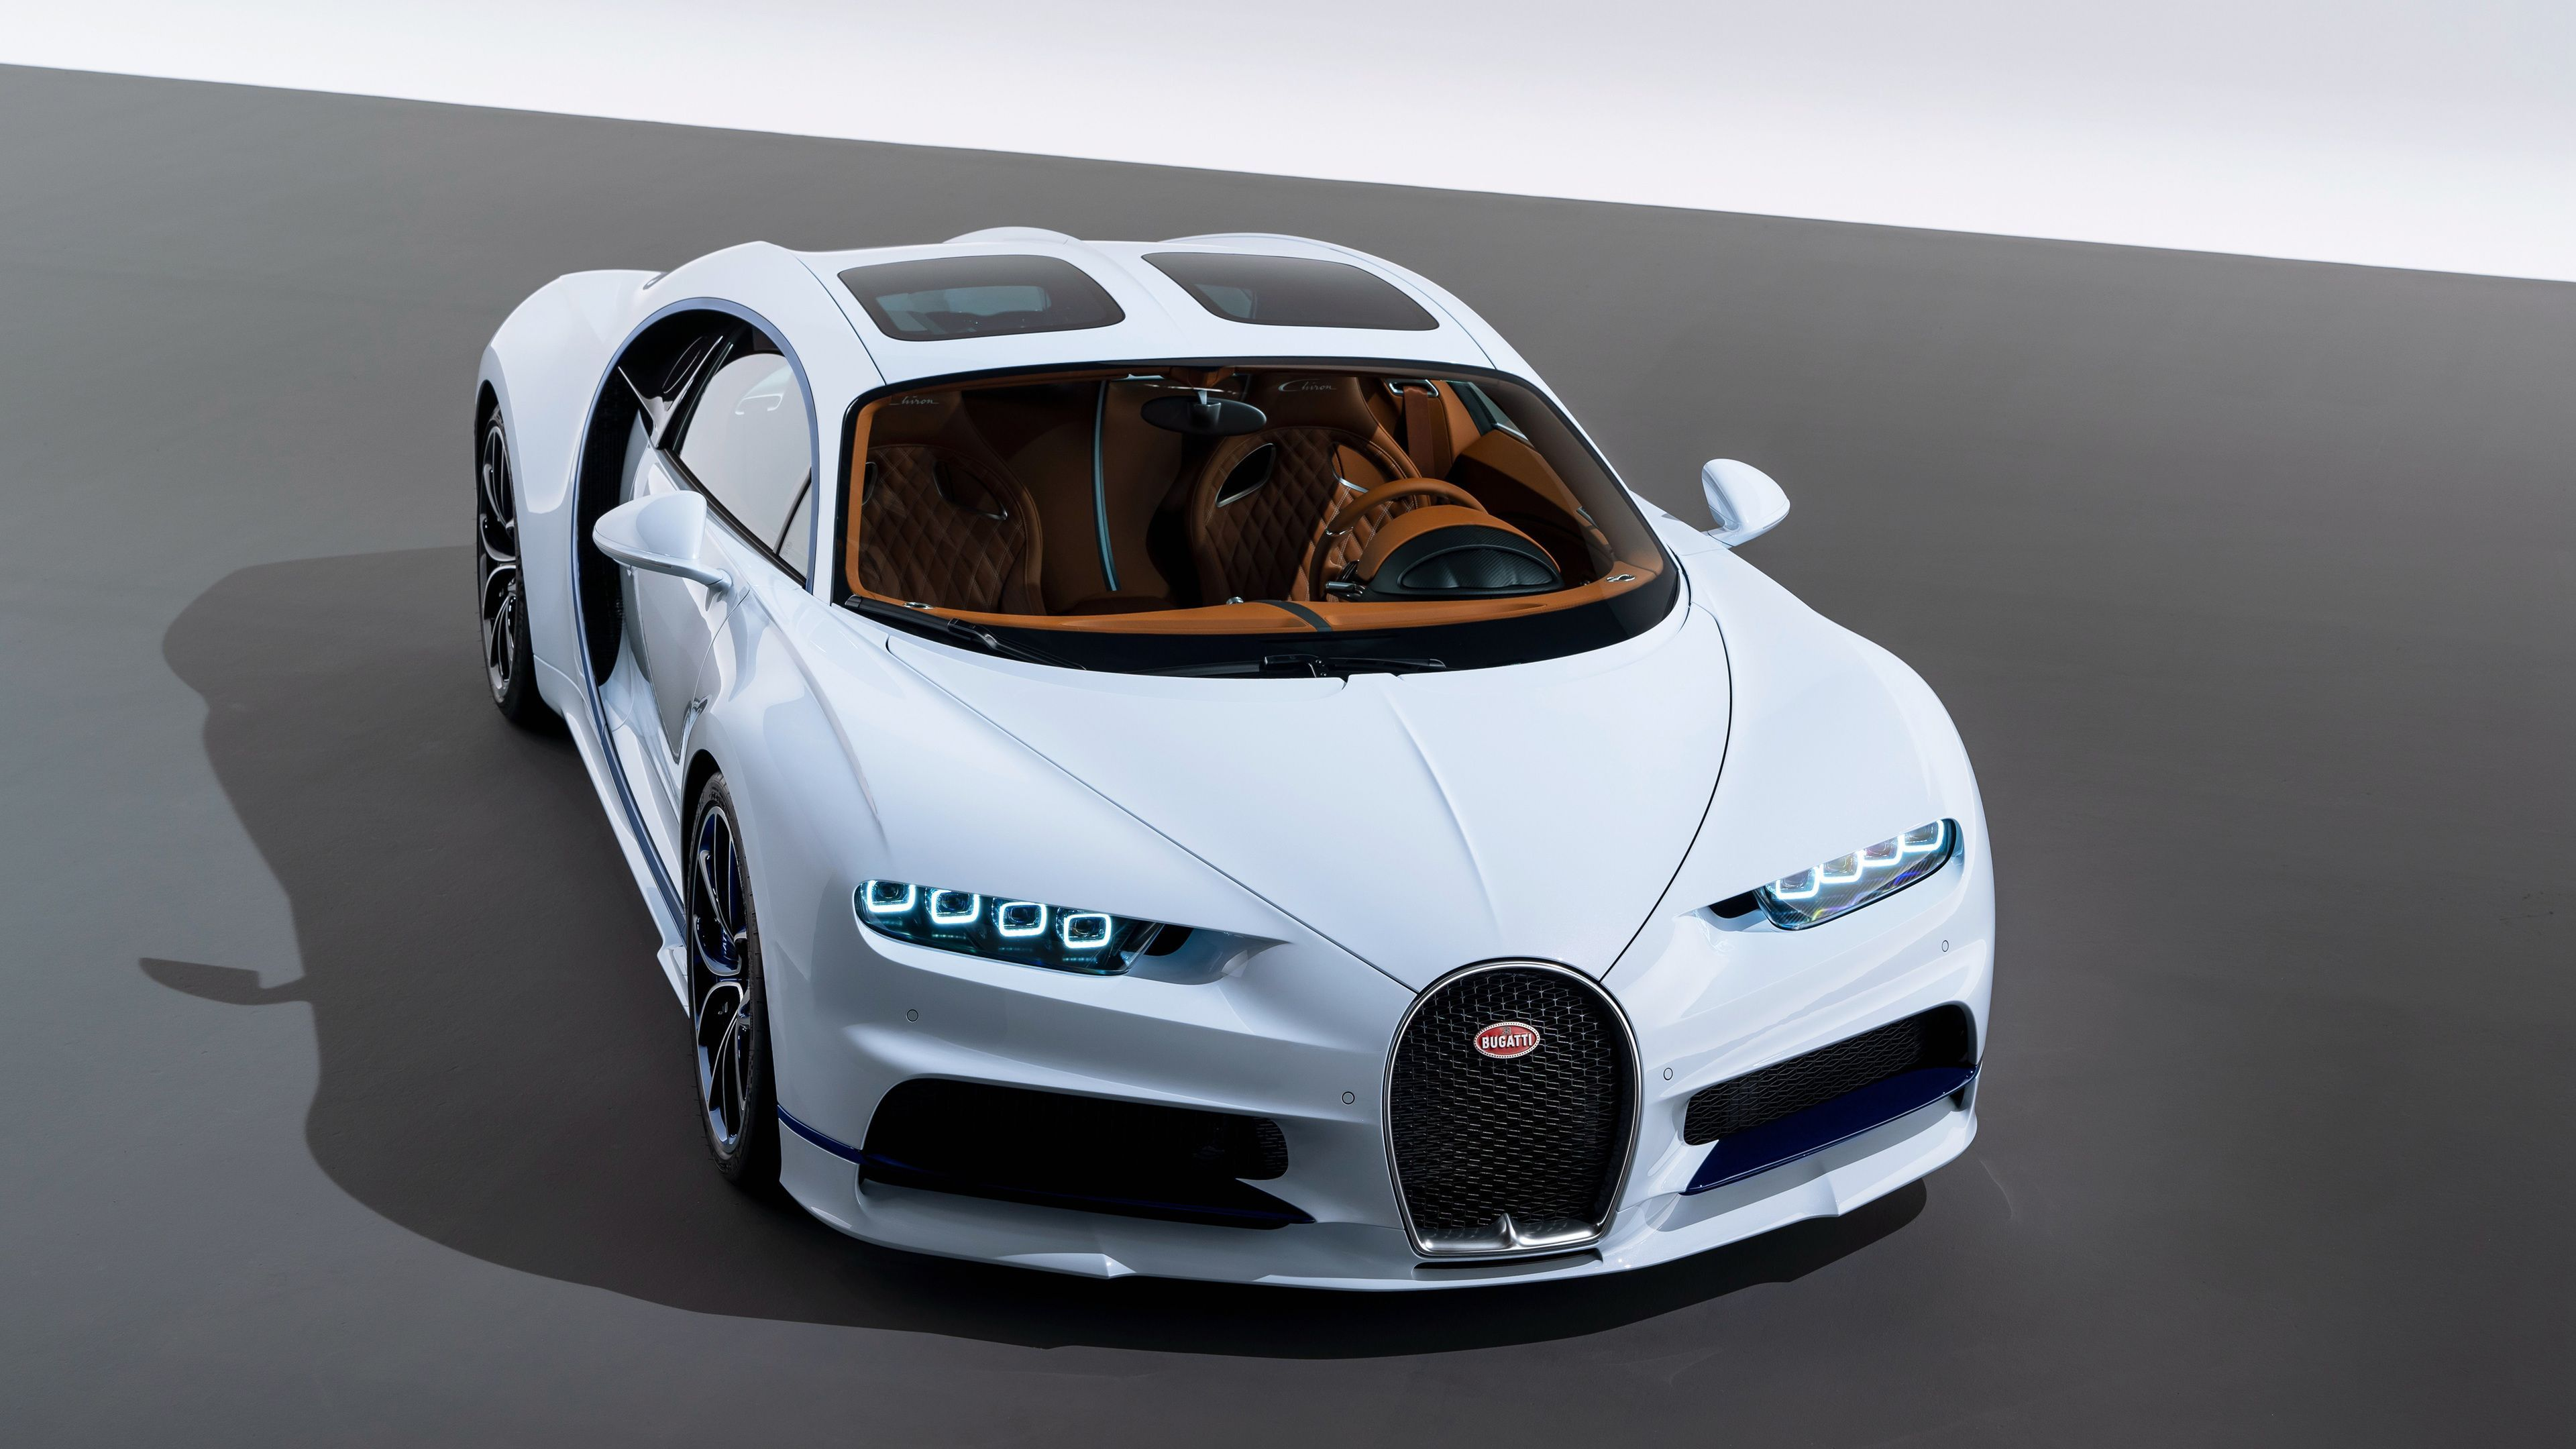 Bugatti Chiron Sky View 2018 4k Hd Wallpapers Cars Wallpapers Bugatti Chiron Wallpapers Bugatti Chiron Sky View Wall Bugatti Cars Bugatti Chiron Latest Cars